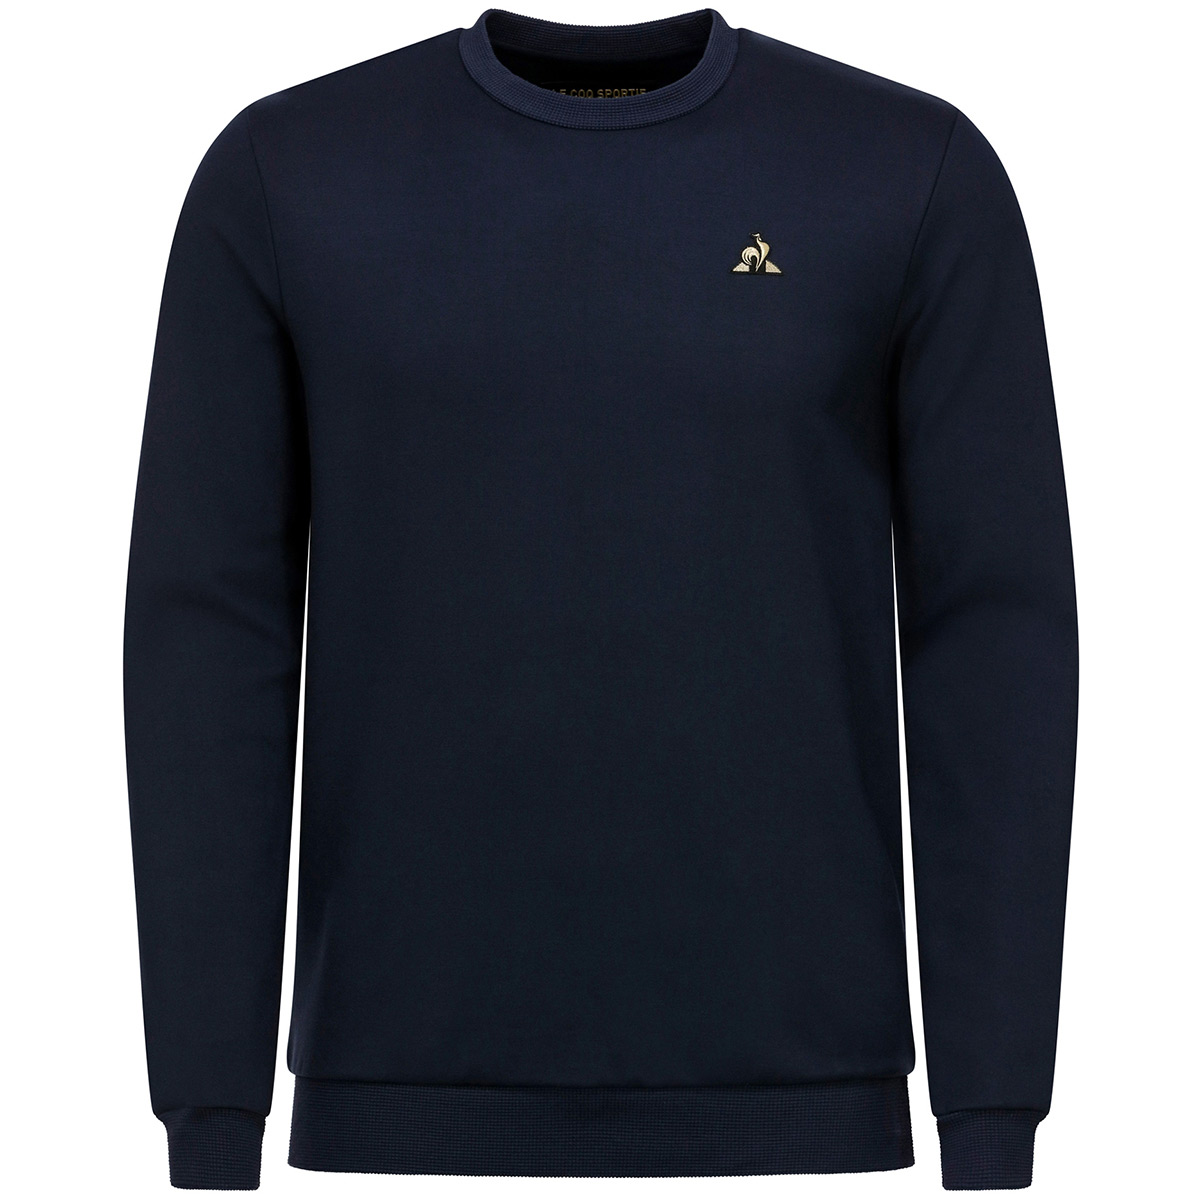 Le Coq Sportif Coq D'or Crew Sweat